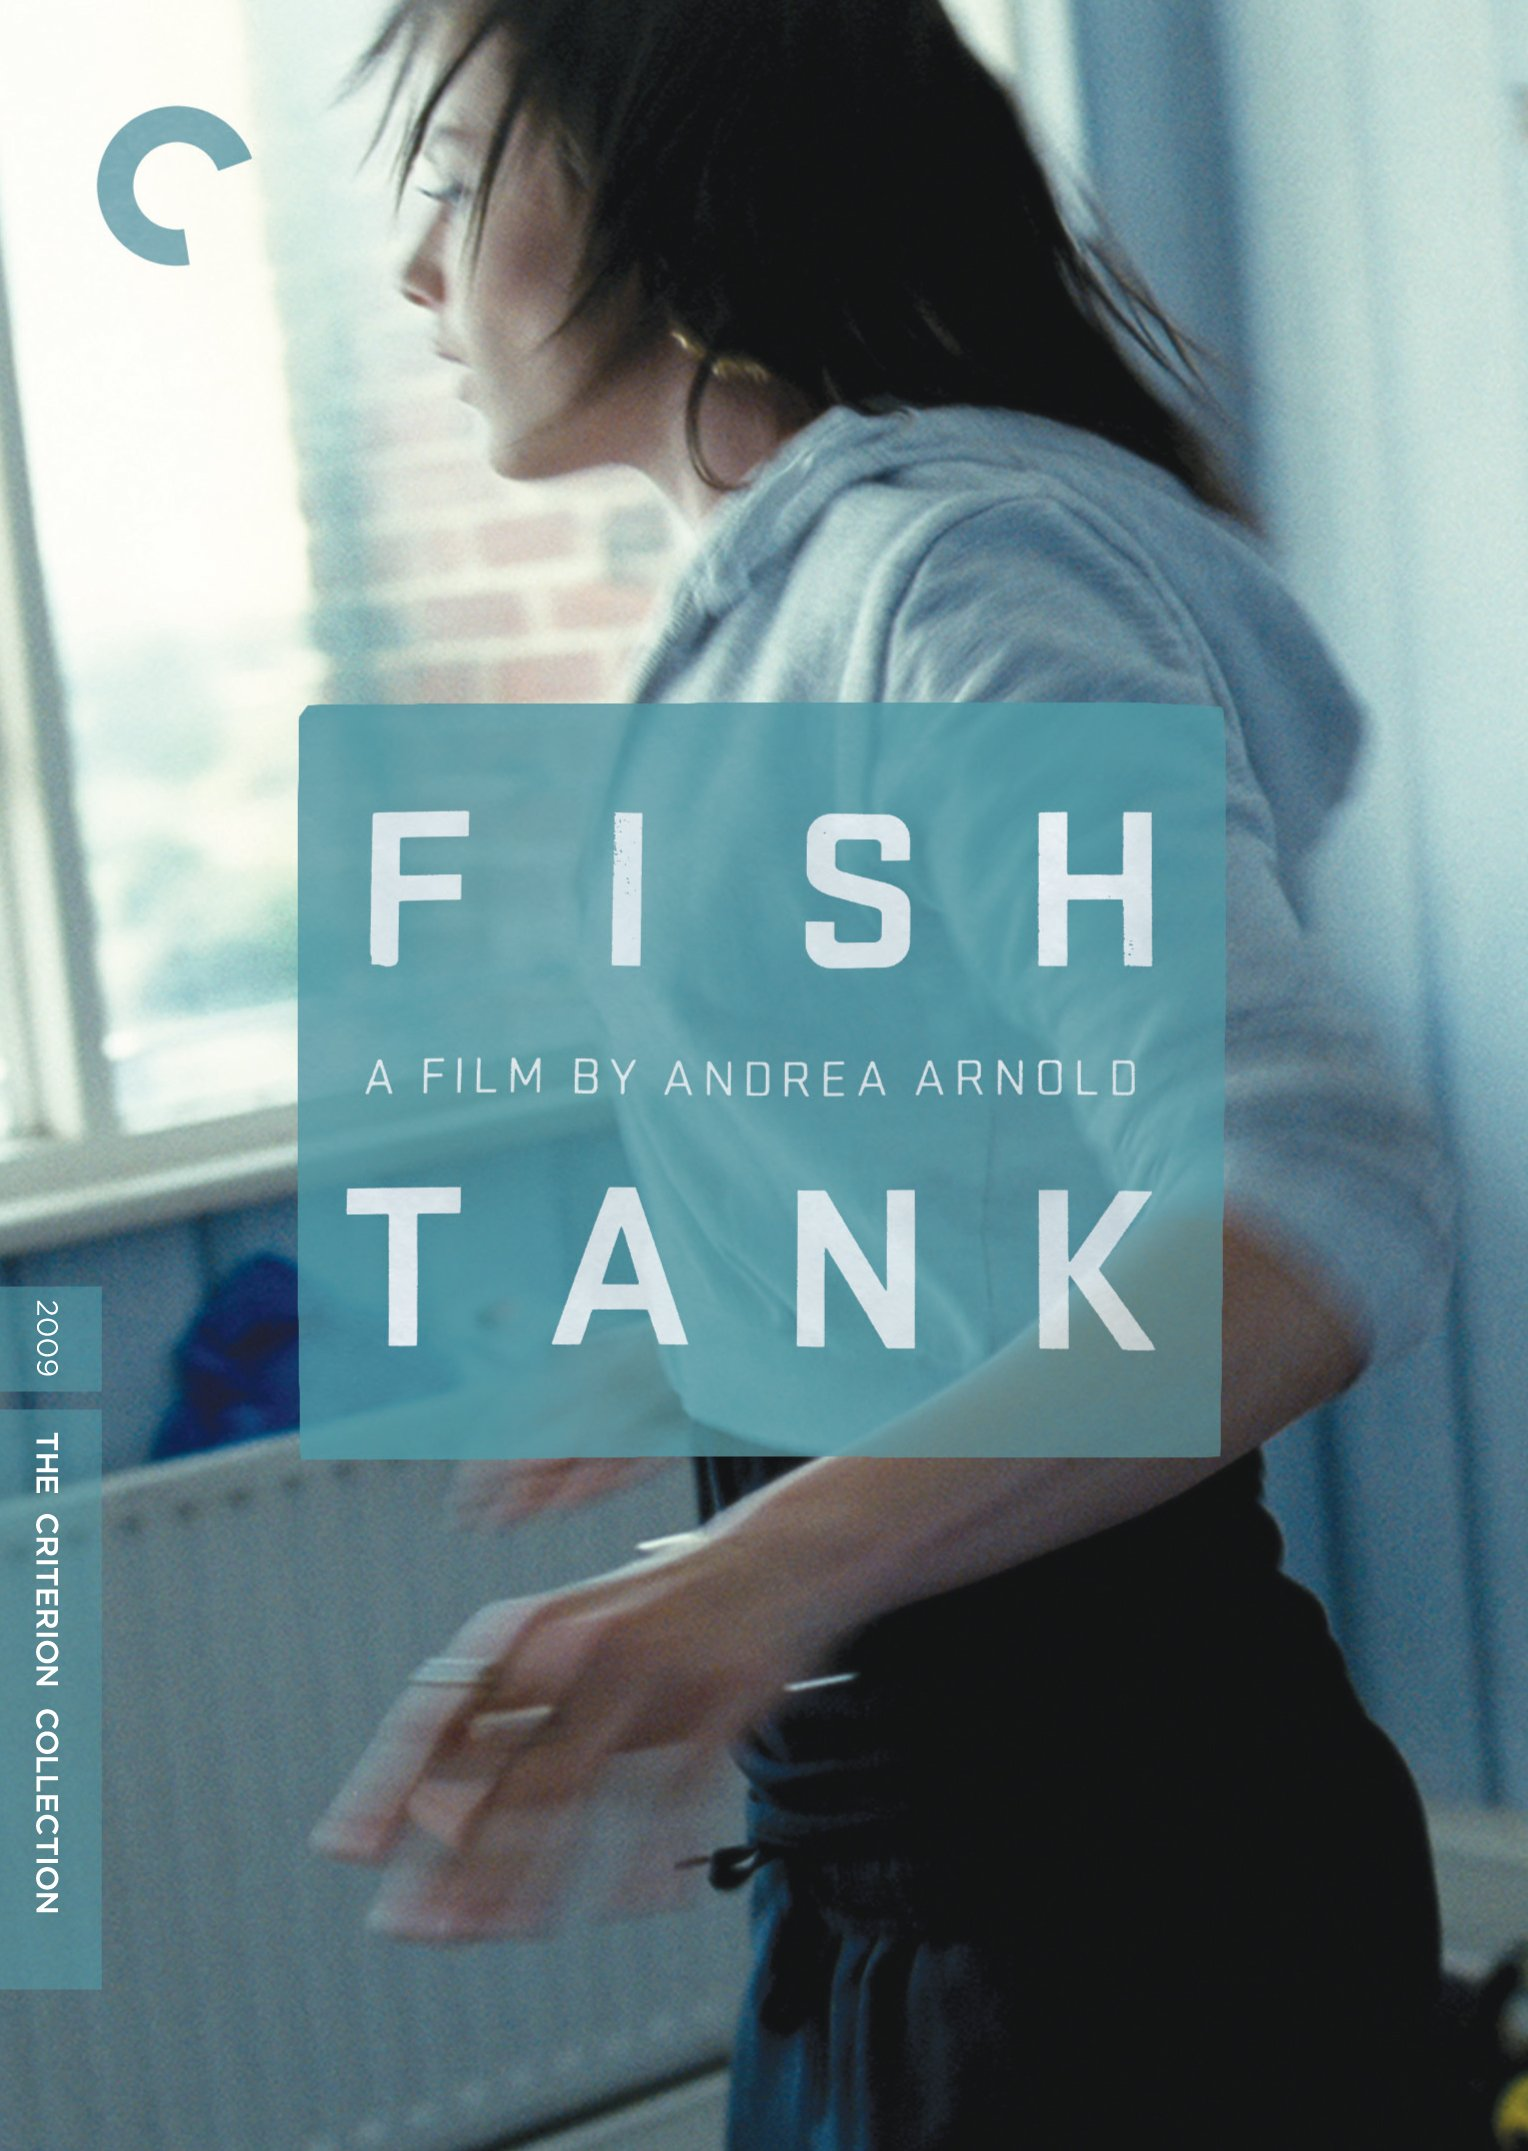 Fish Tank (The Criterion Collection) by Criterion Collection